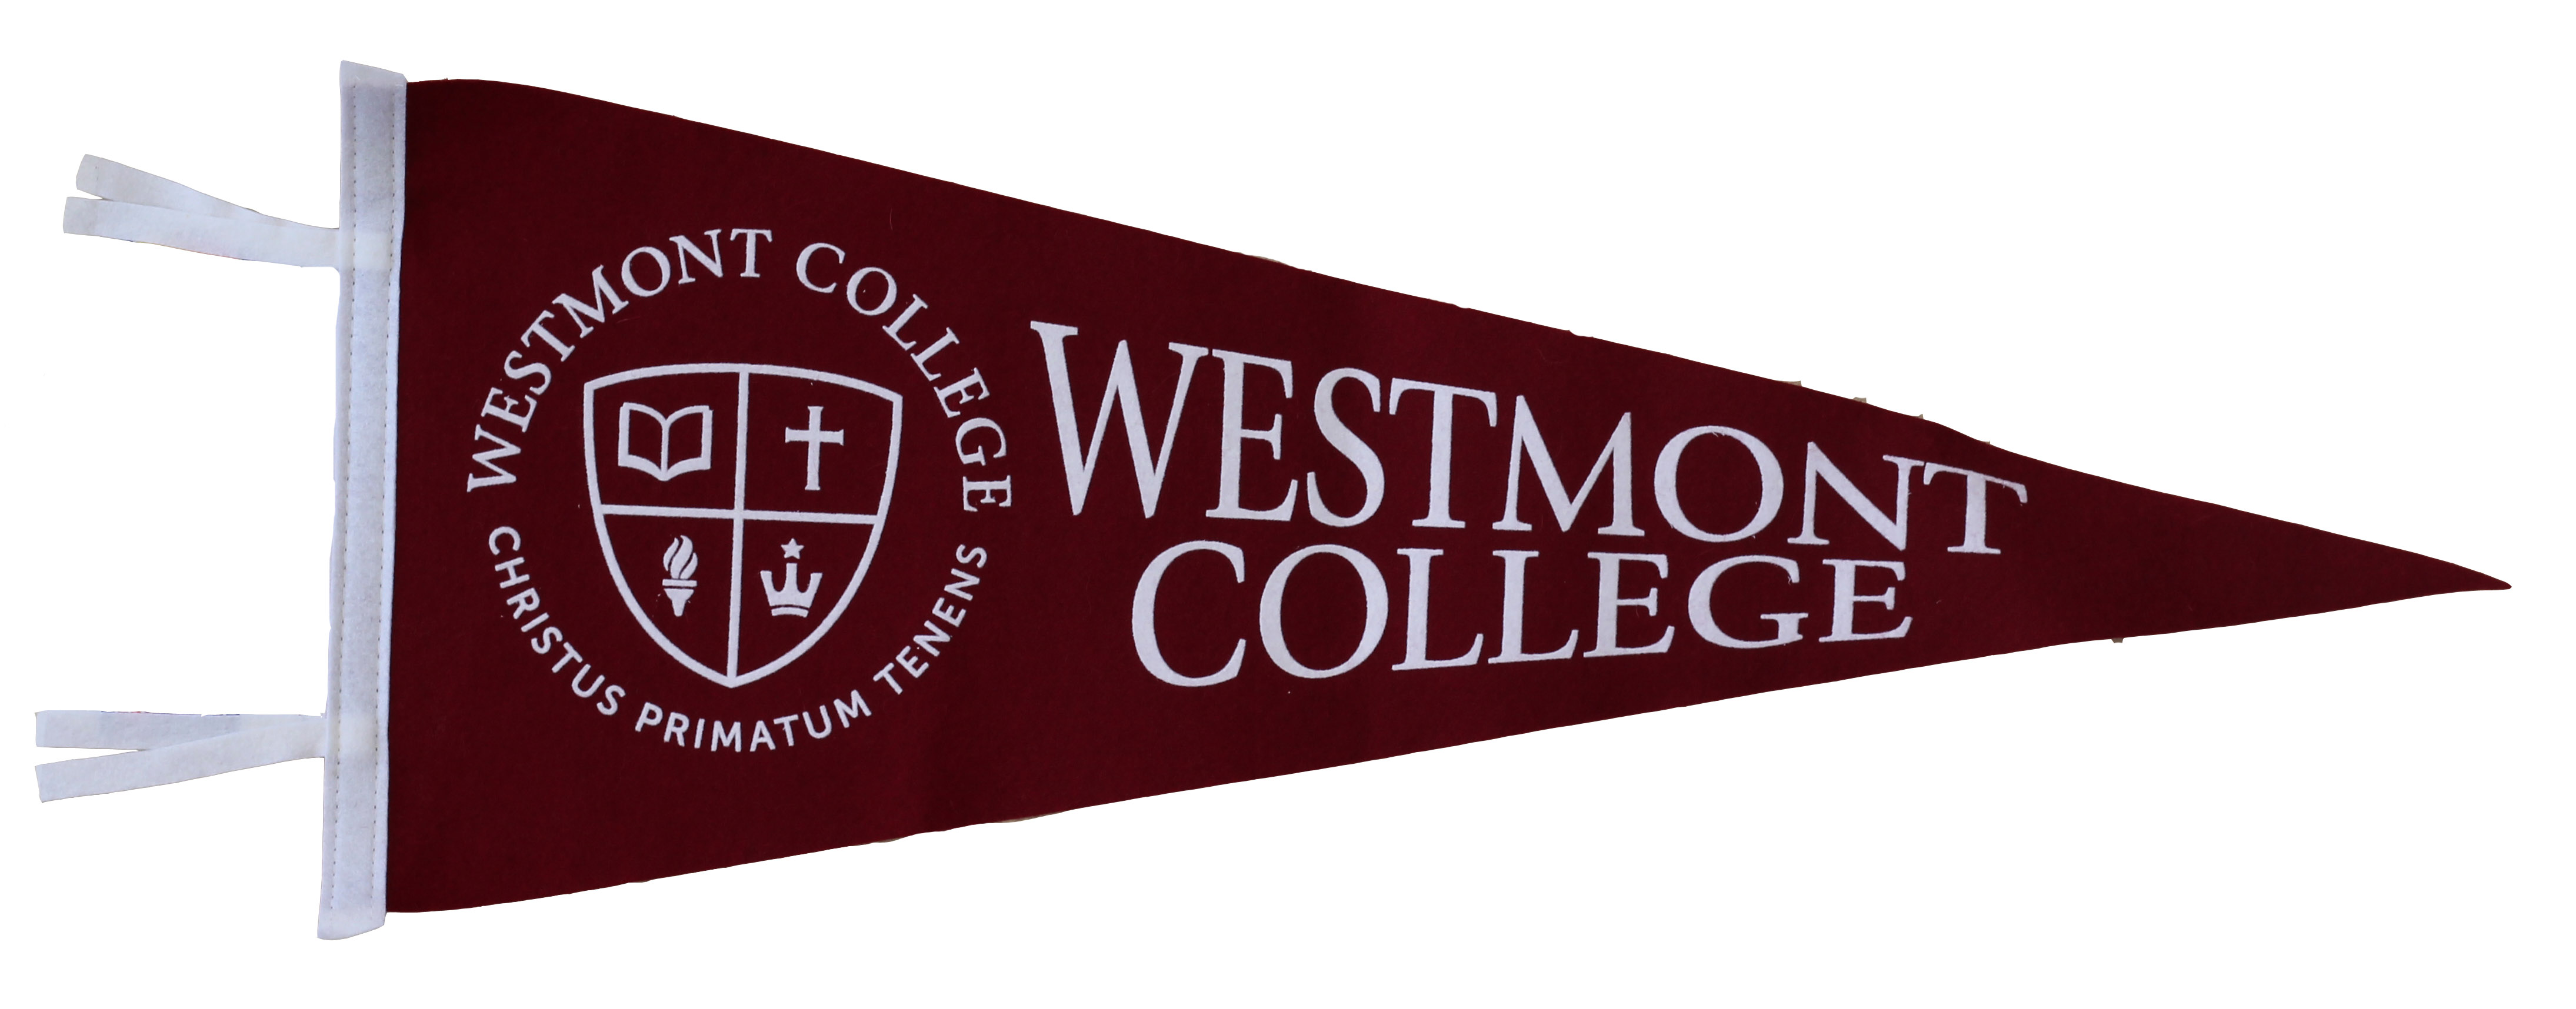 Image for the Collegiate Pacific Large Pennant Formal Seal product